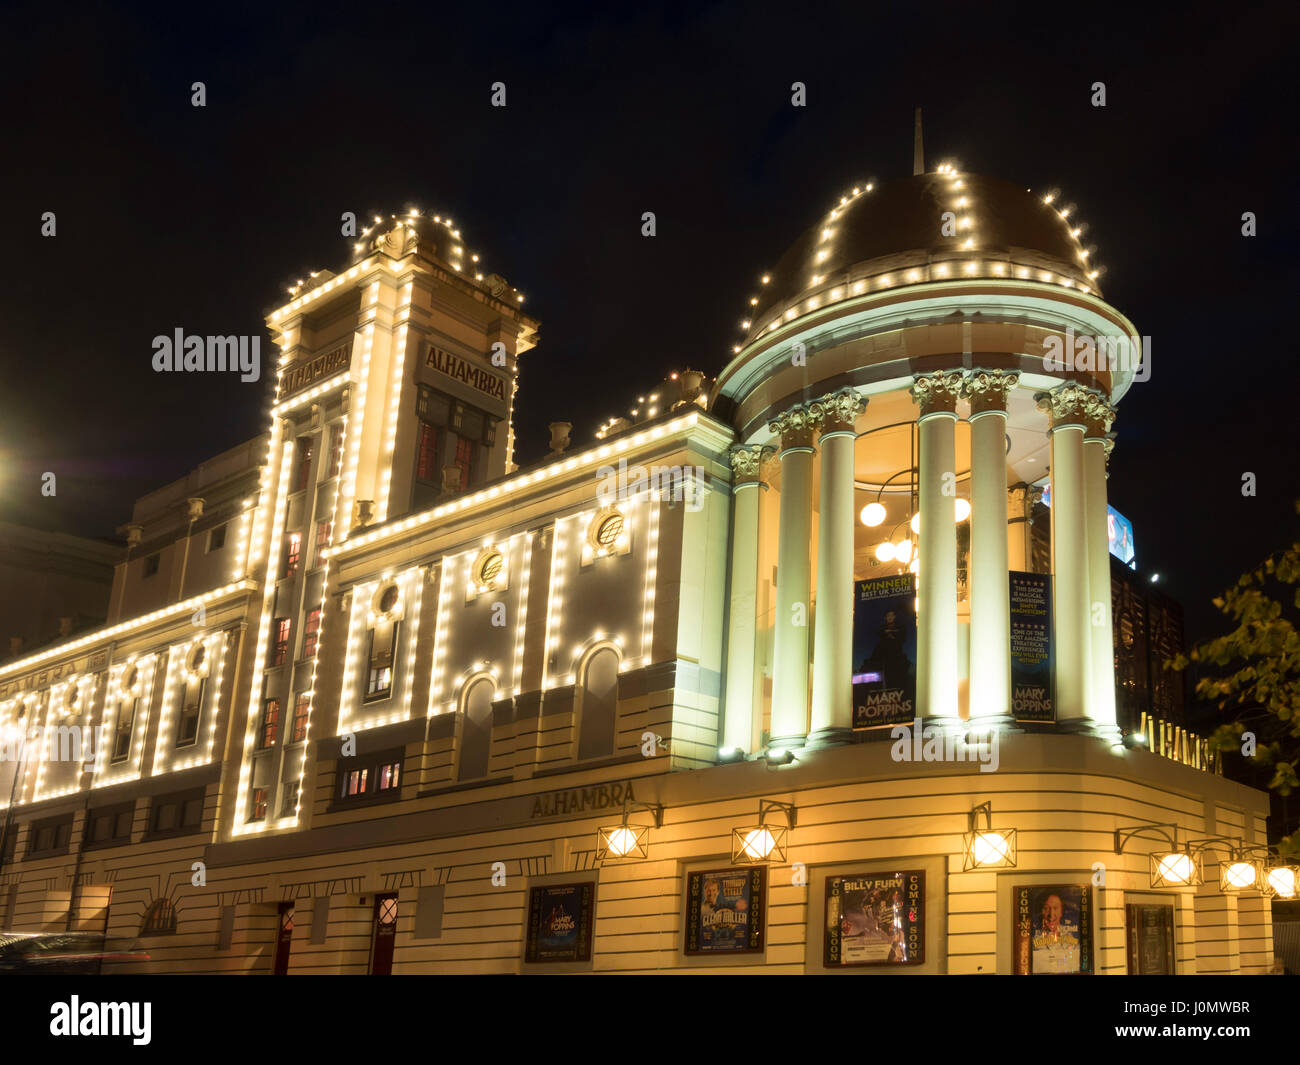 The Alhambra theatre, Bradford, West Yorkshire, UK. - Stock Image